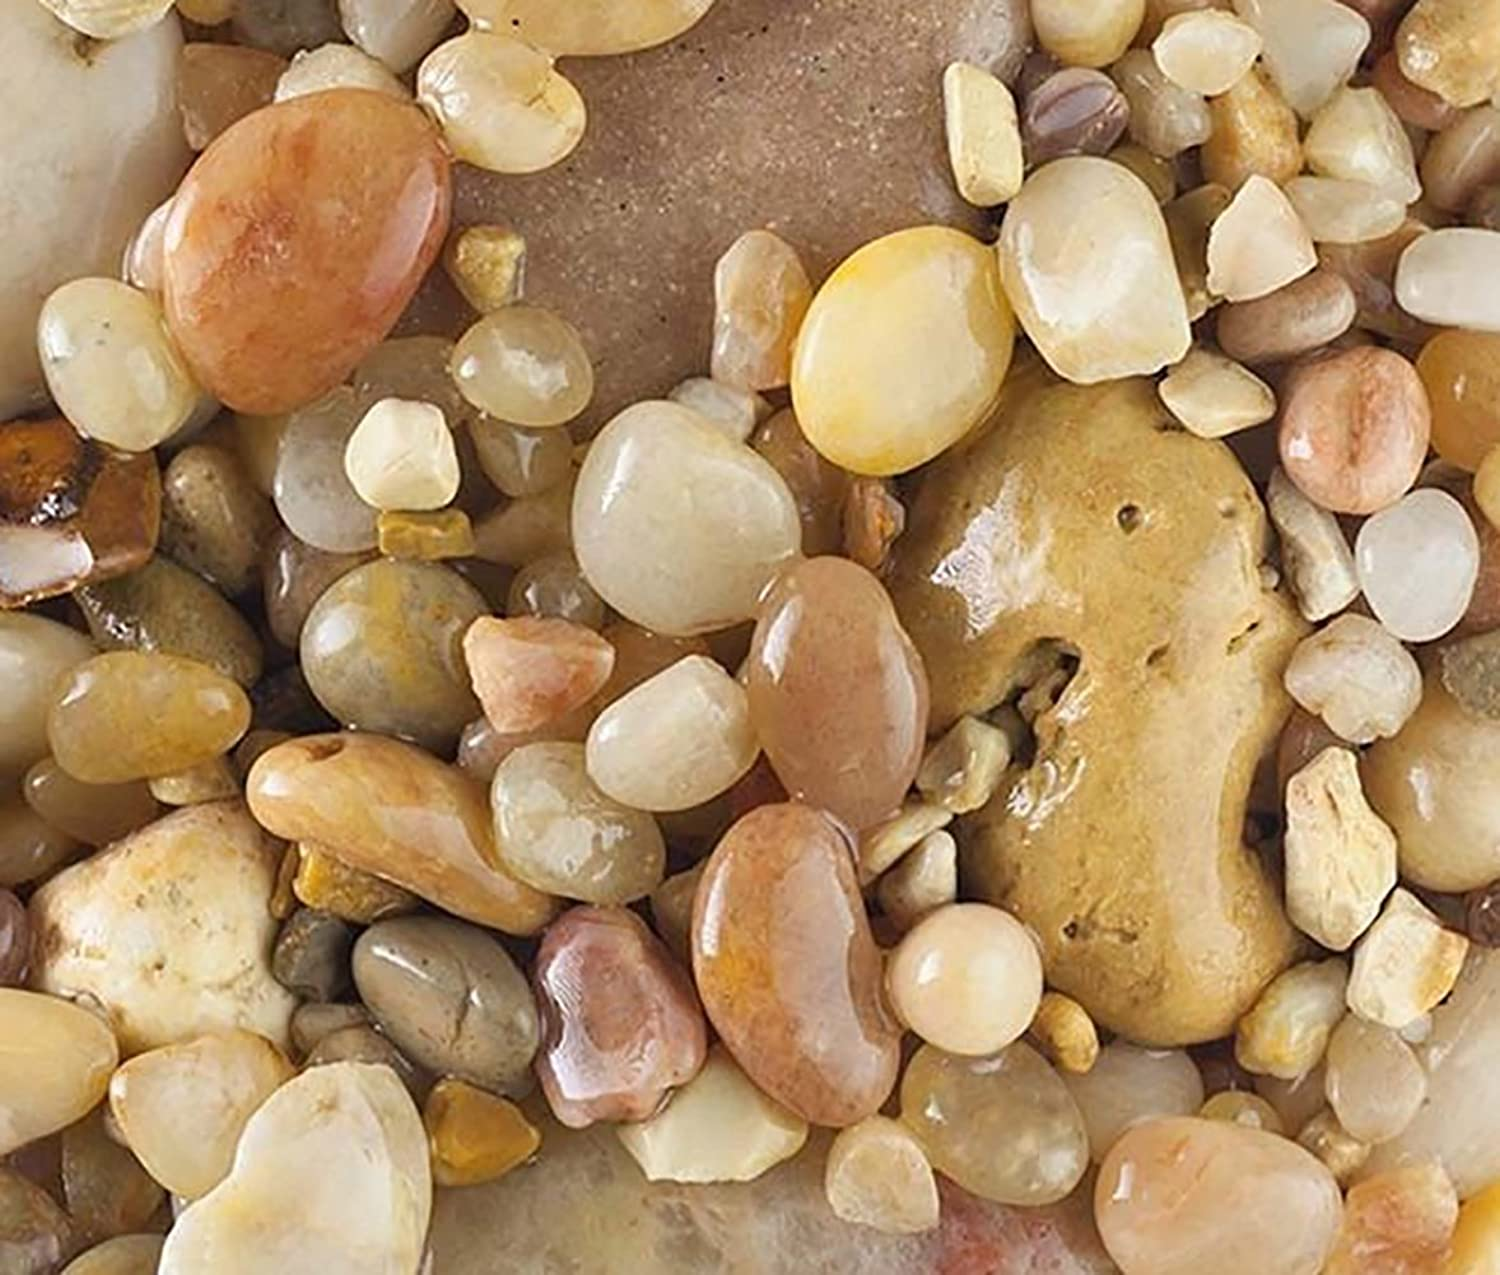 Safe & NonToxic {Various Sizes} 20 Pound Bag of Gravel, Rocks & Pebbles Decor for Freshwater Aquarium w Earthy Toned Smooth Polished Sleek River Inspired Natural Style [Tan & White]